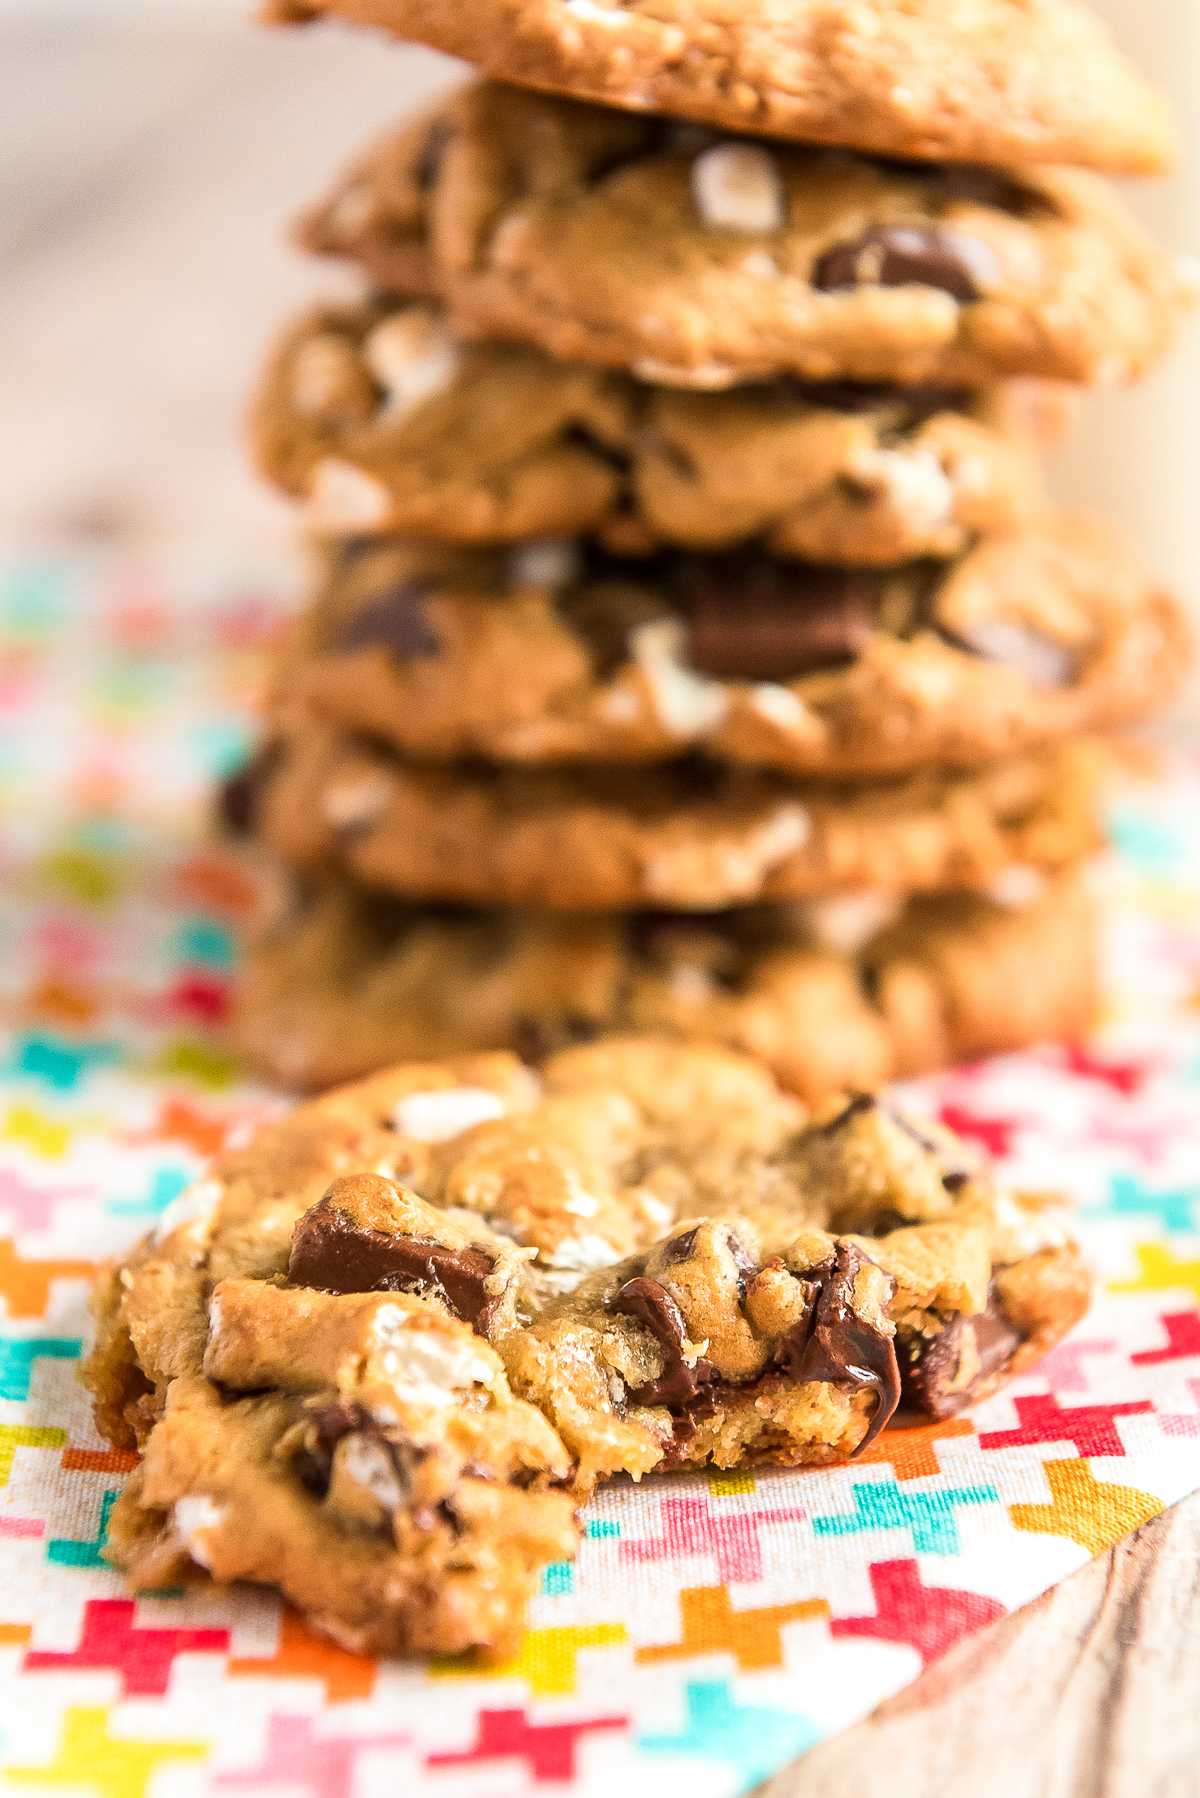 Stack of cookies with one cookie in the foreground with a bite taken out of it.